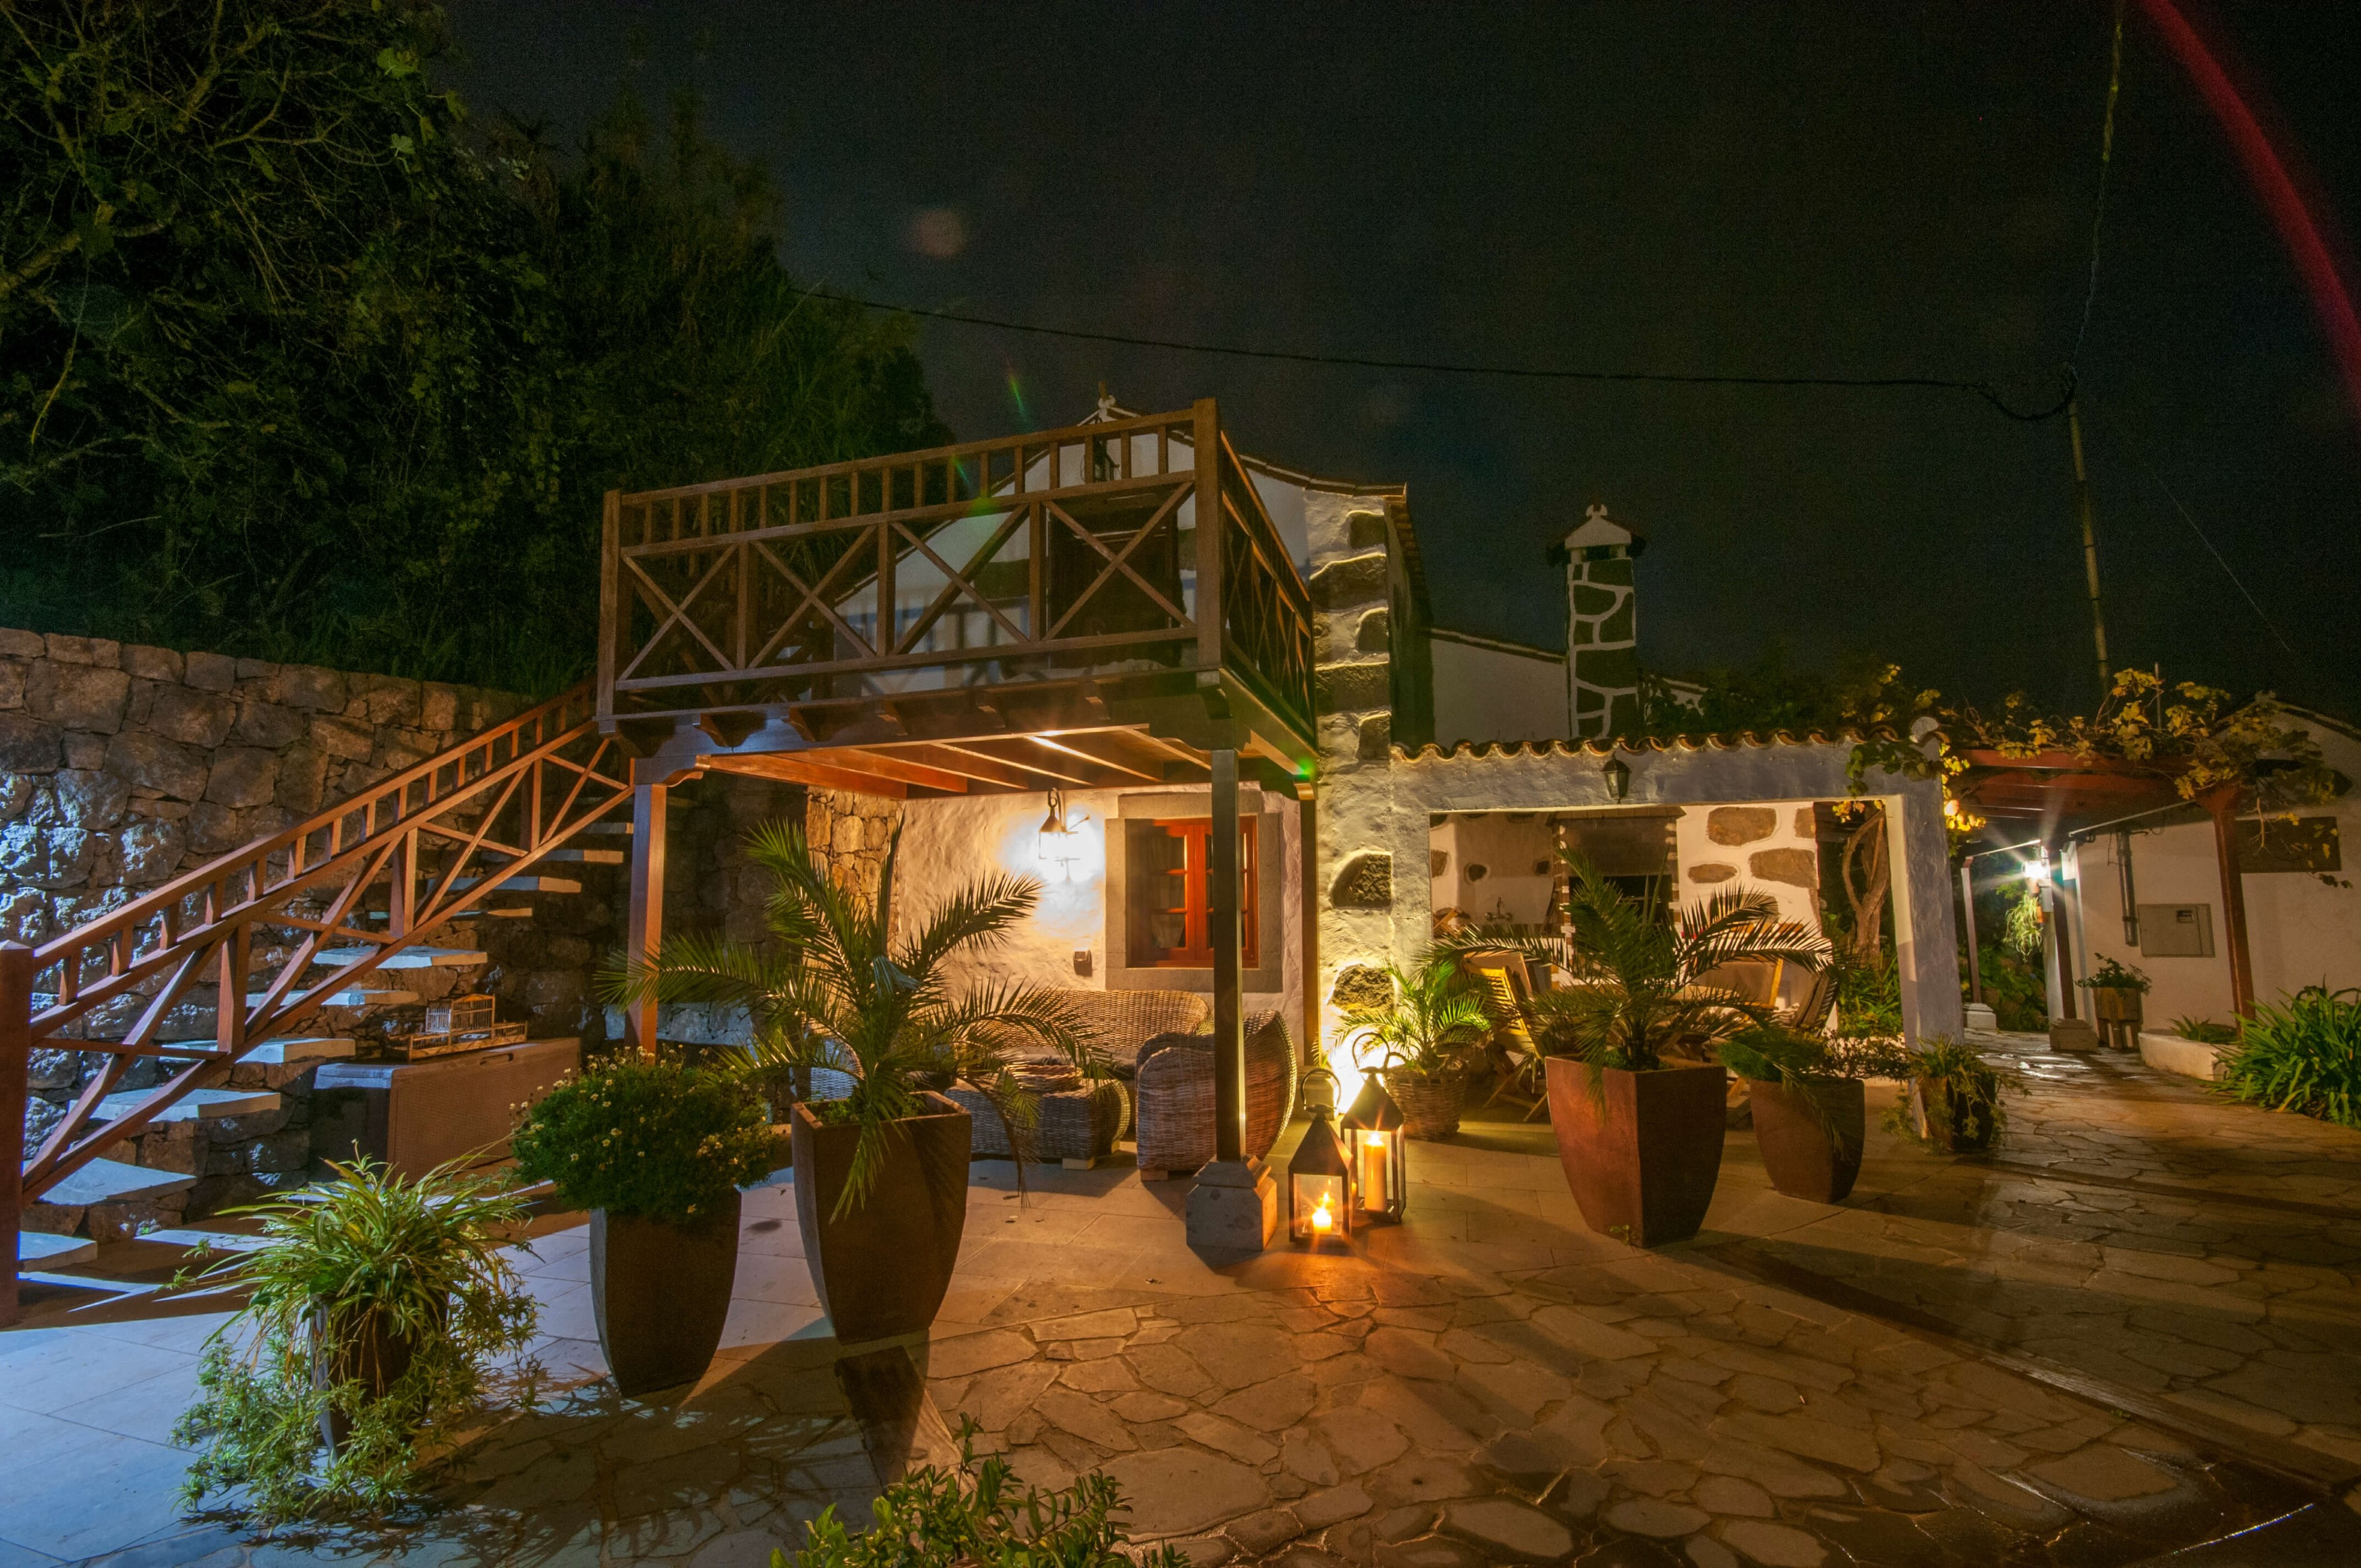 Maison de vacances House - 2 Bedrooms with Pool and WiFi - 106781 (2742990), San Fernando, Grande Canarie, Iles Canaries, Espagne, image 24